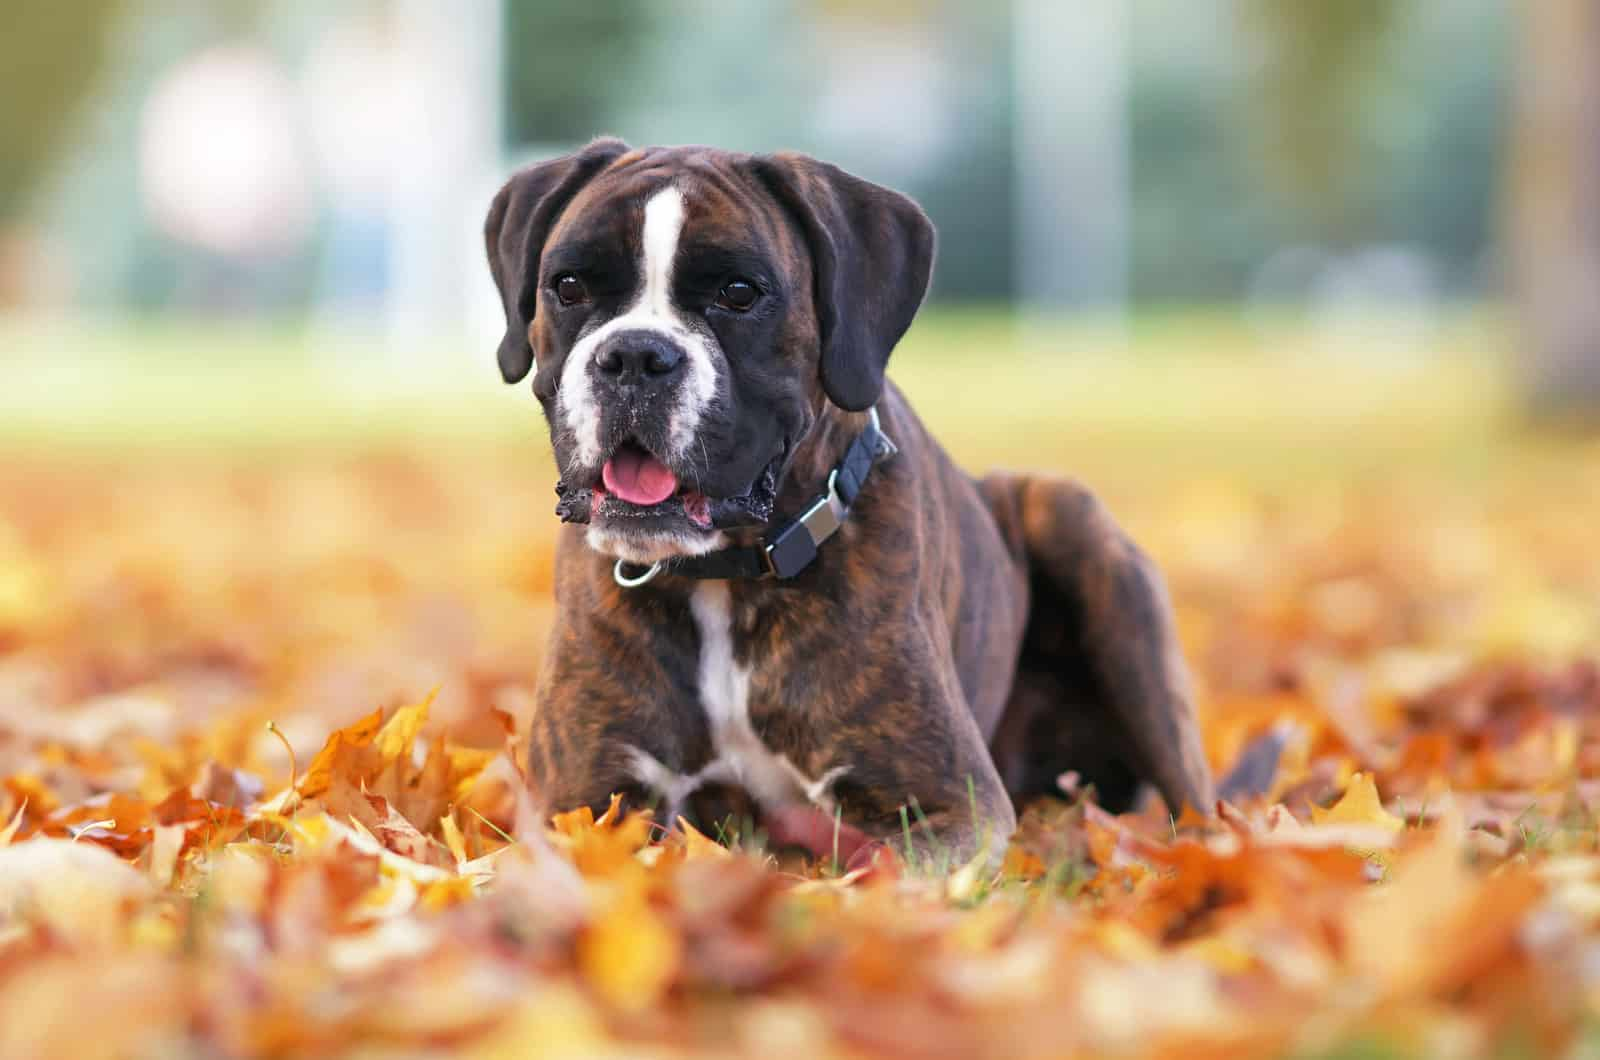 boxer lies in autumn leaves